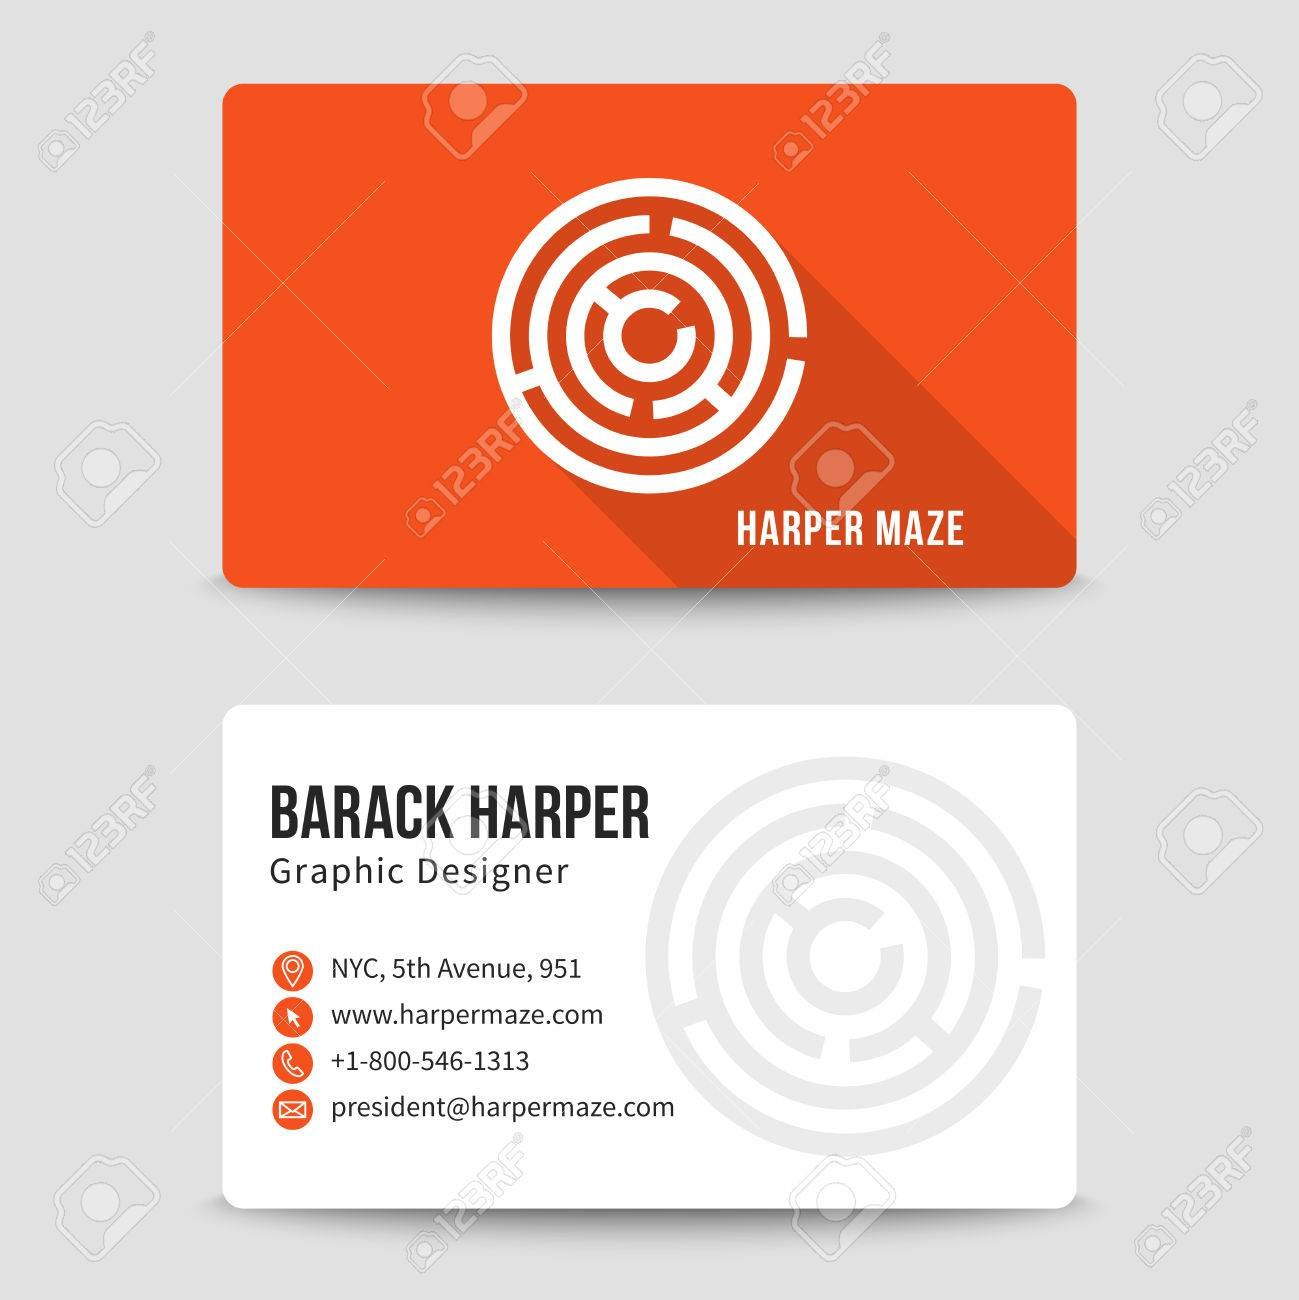 Modern Business Card Template With Maze Address And Phone Number Pertaining To Email Business Card Templates